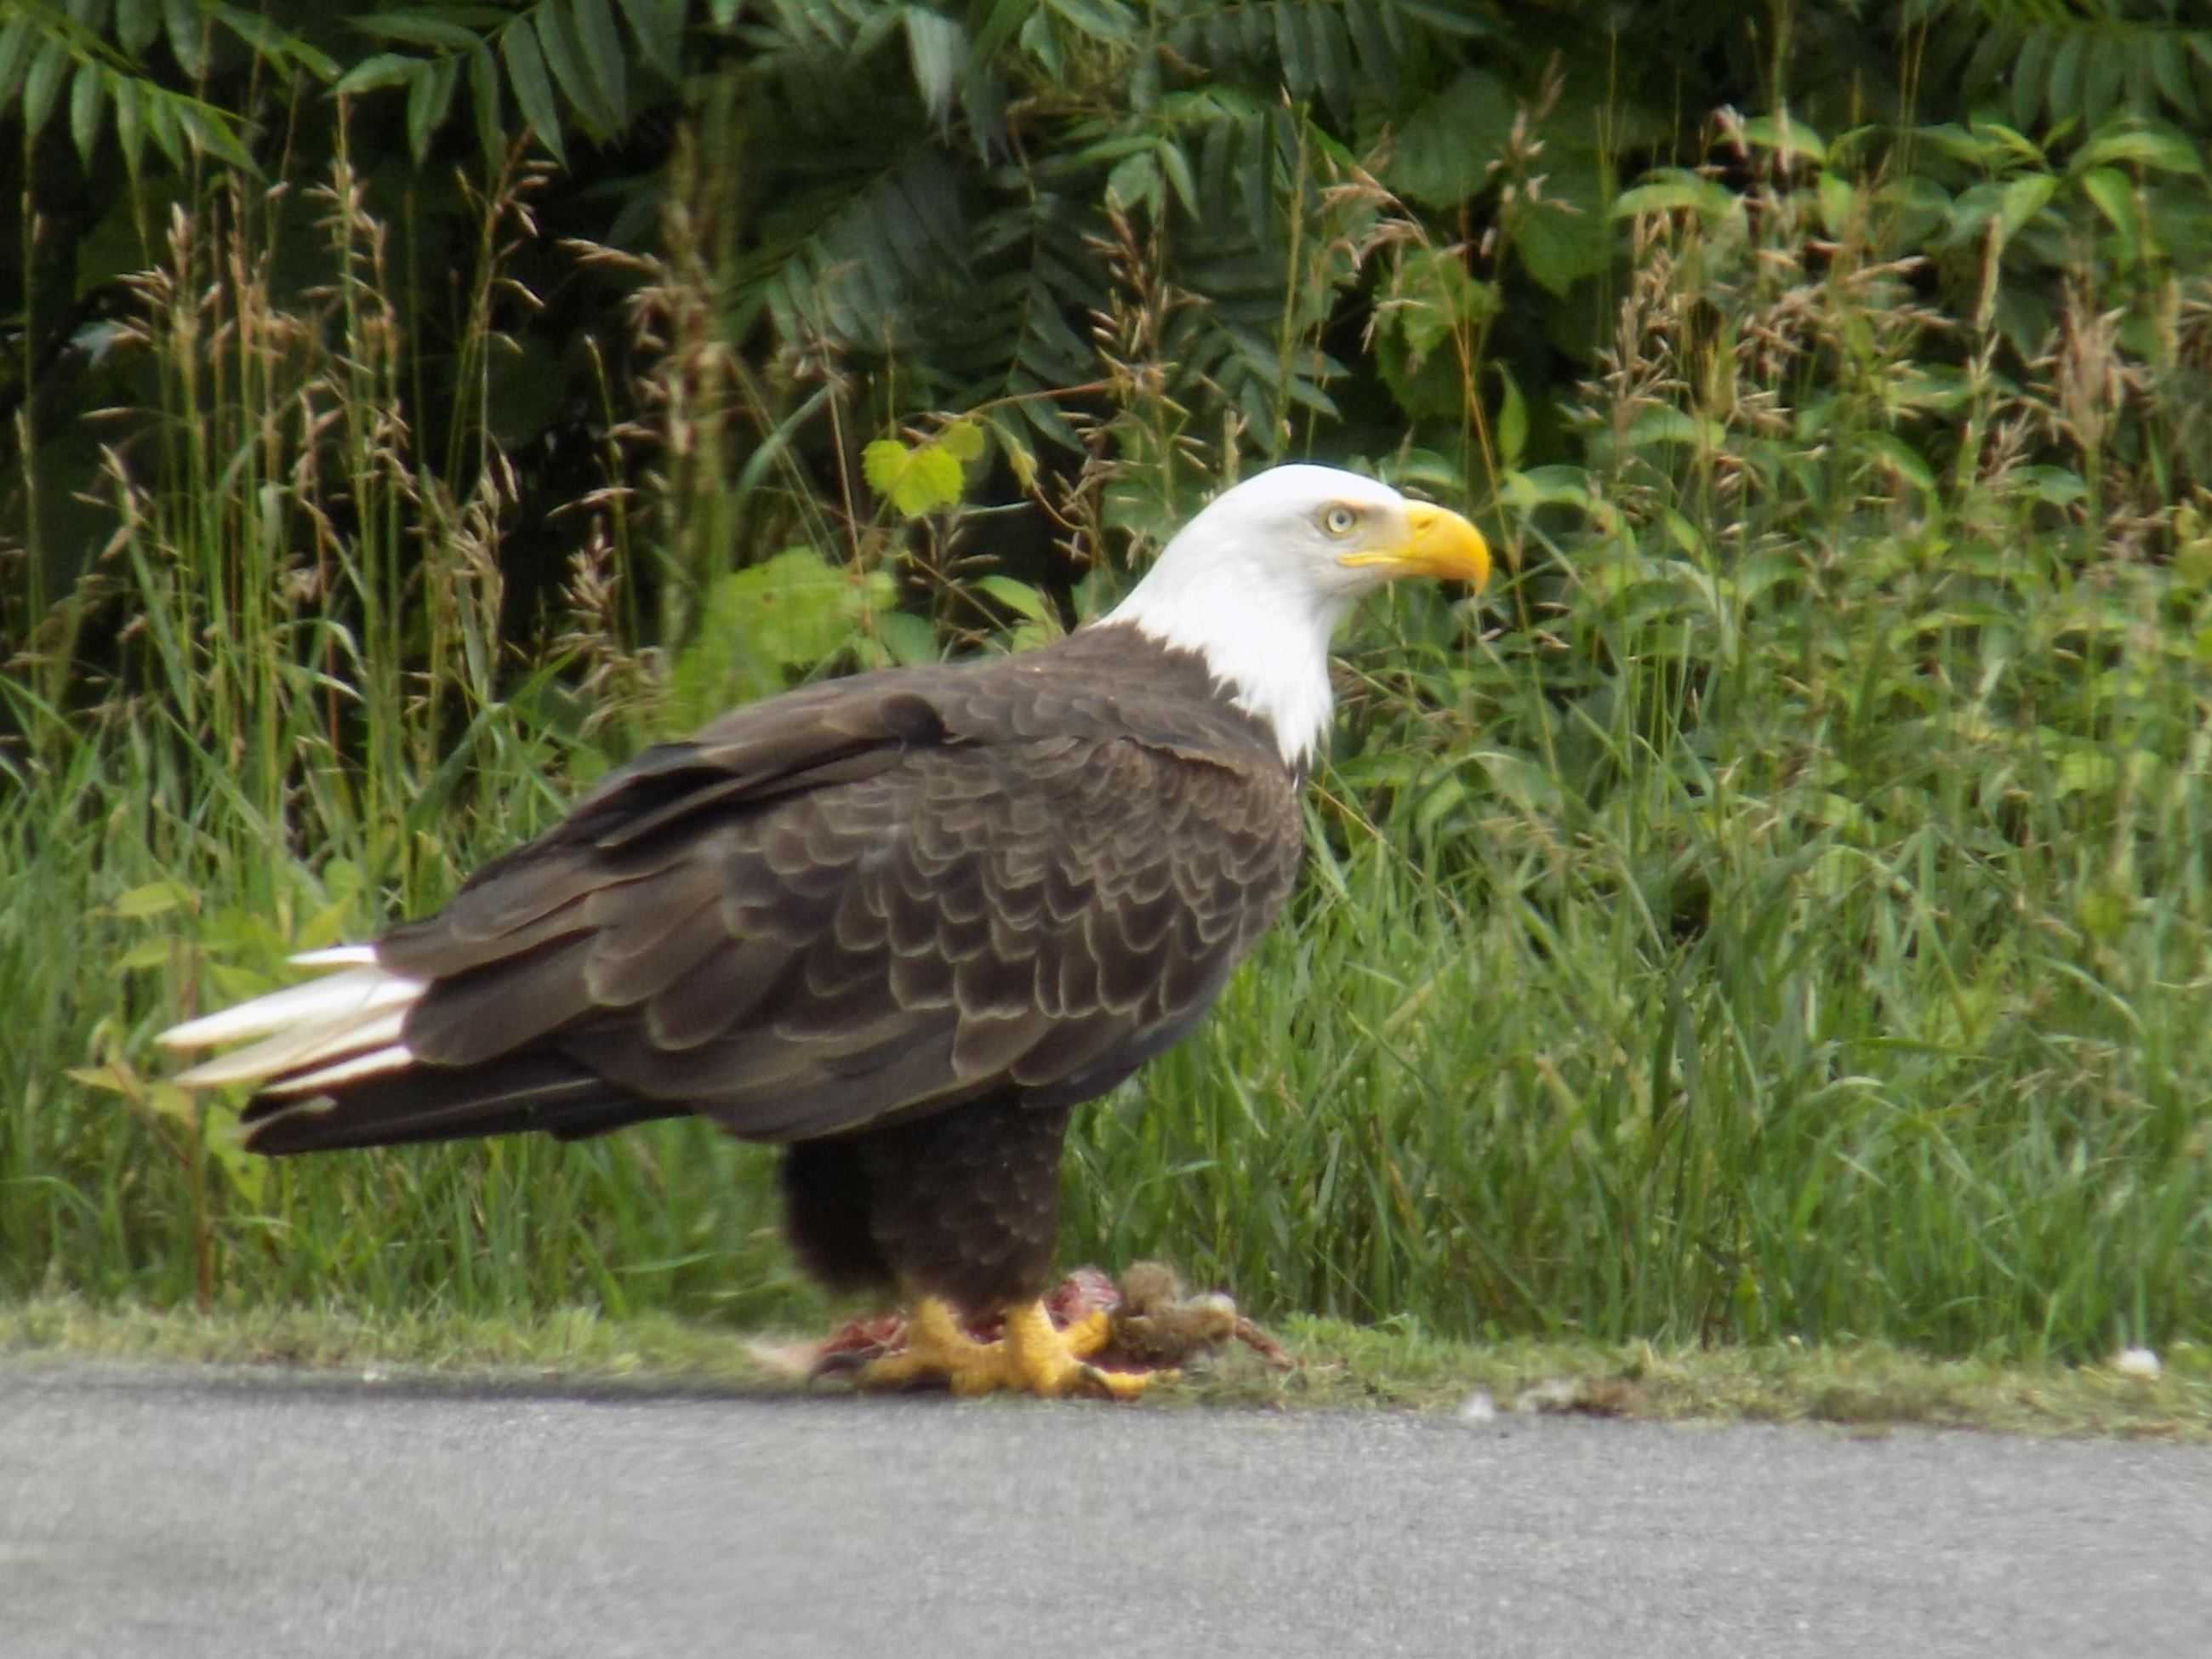 Bald Eagle Indian Opening Rd by Jaqueline Johnson